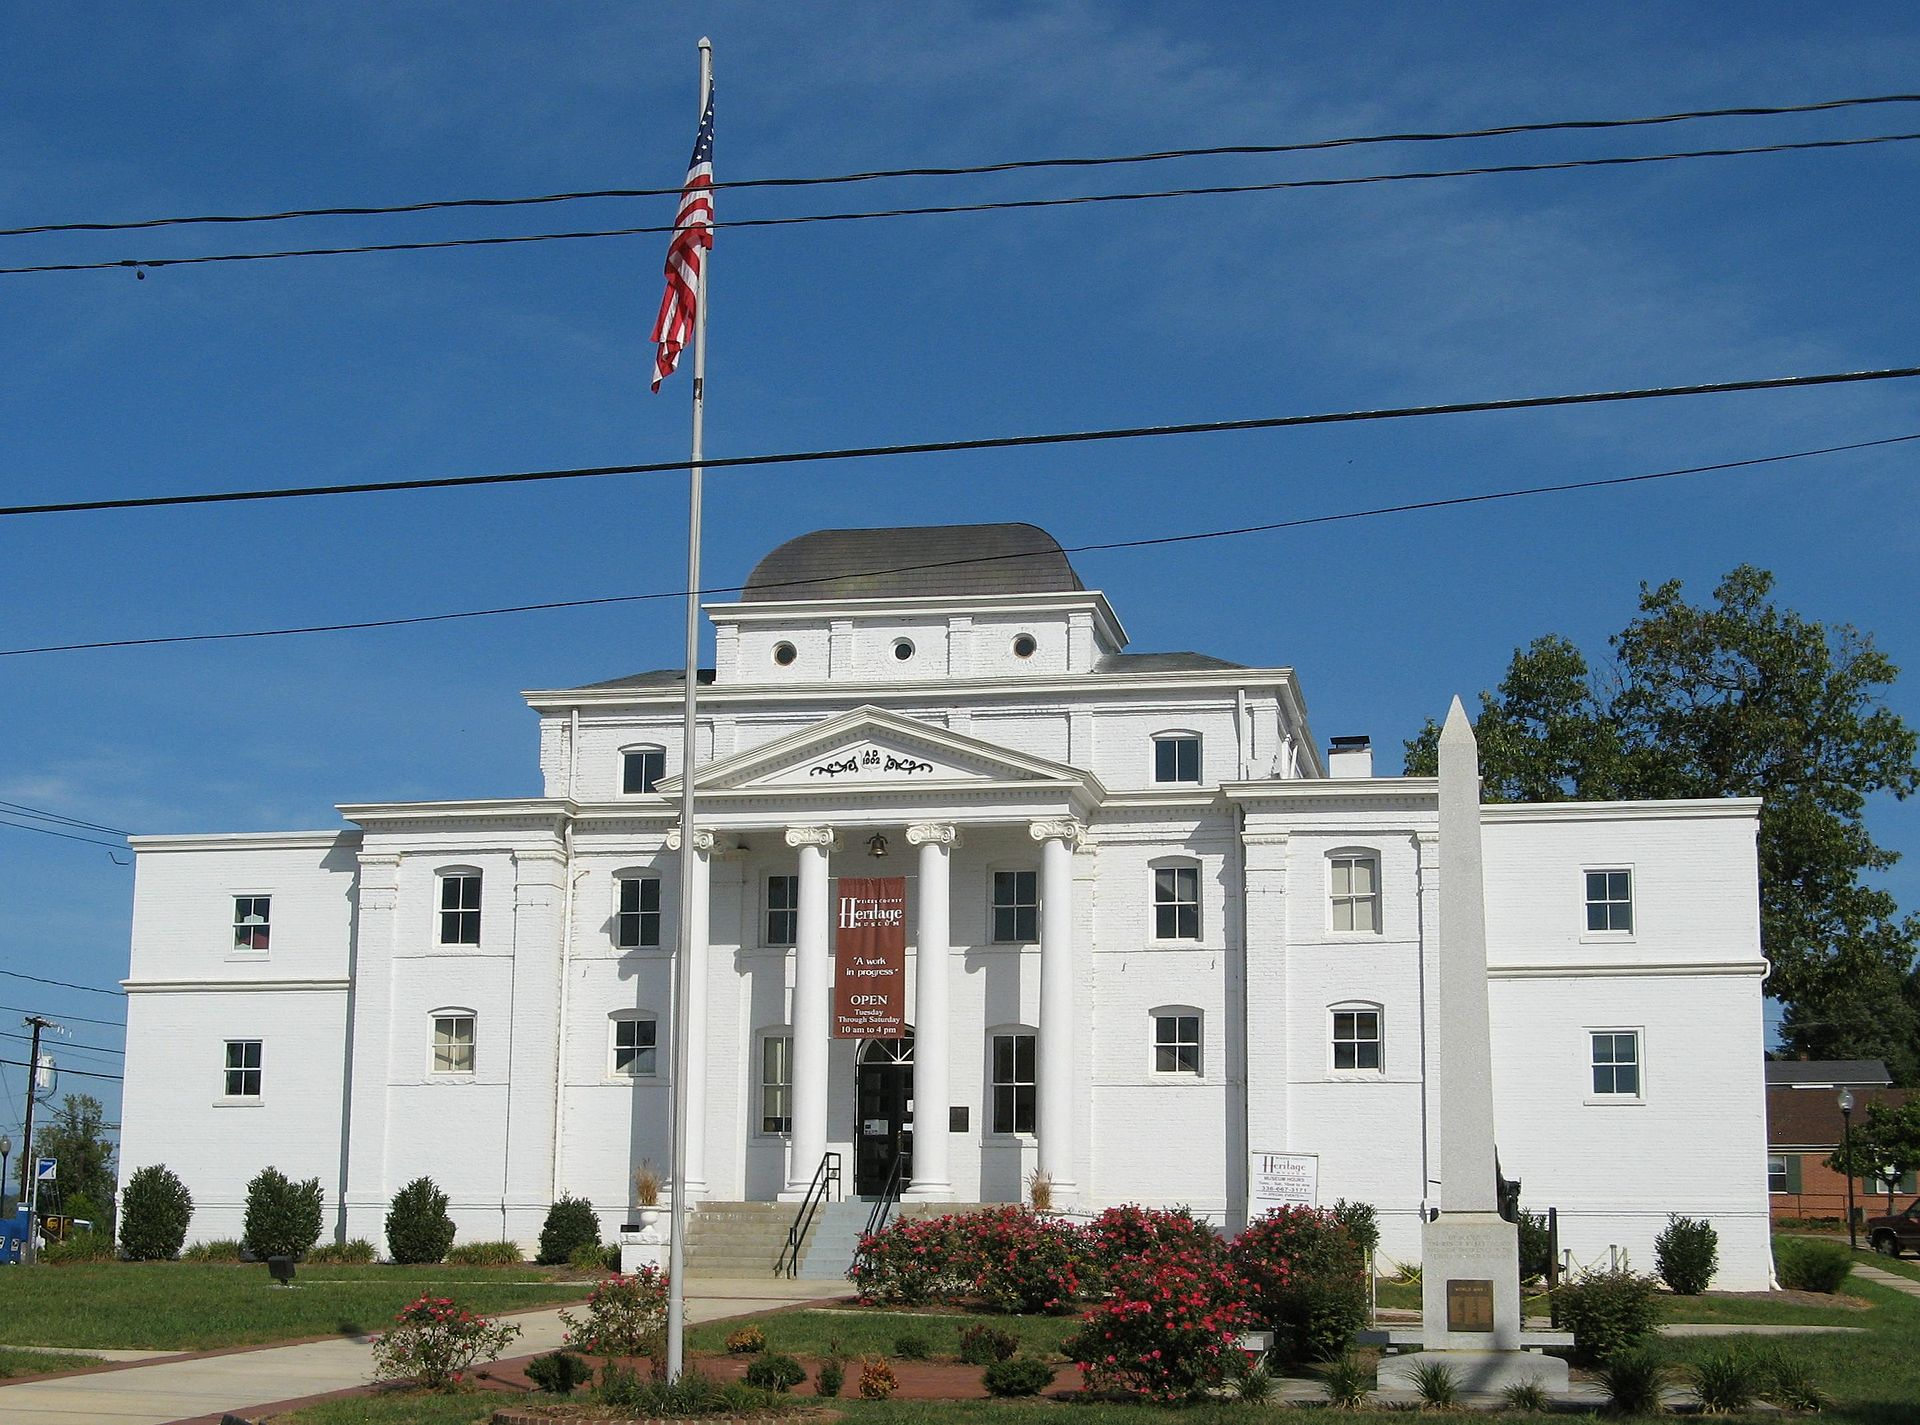 The Wilkes Heritage Museum, formerly the county courthouse